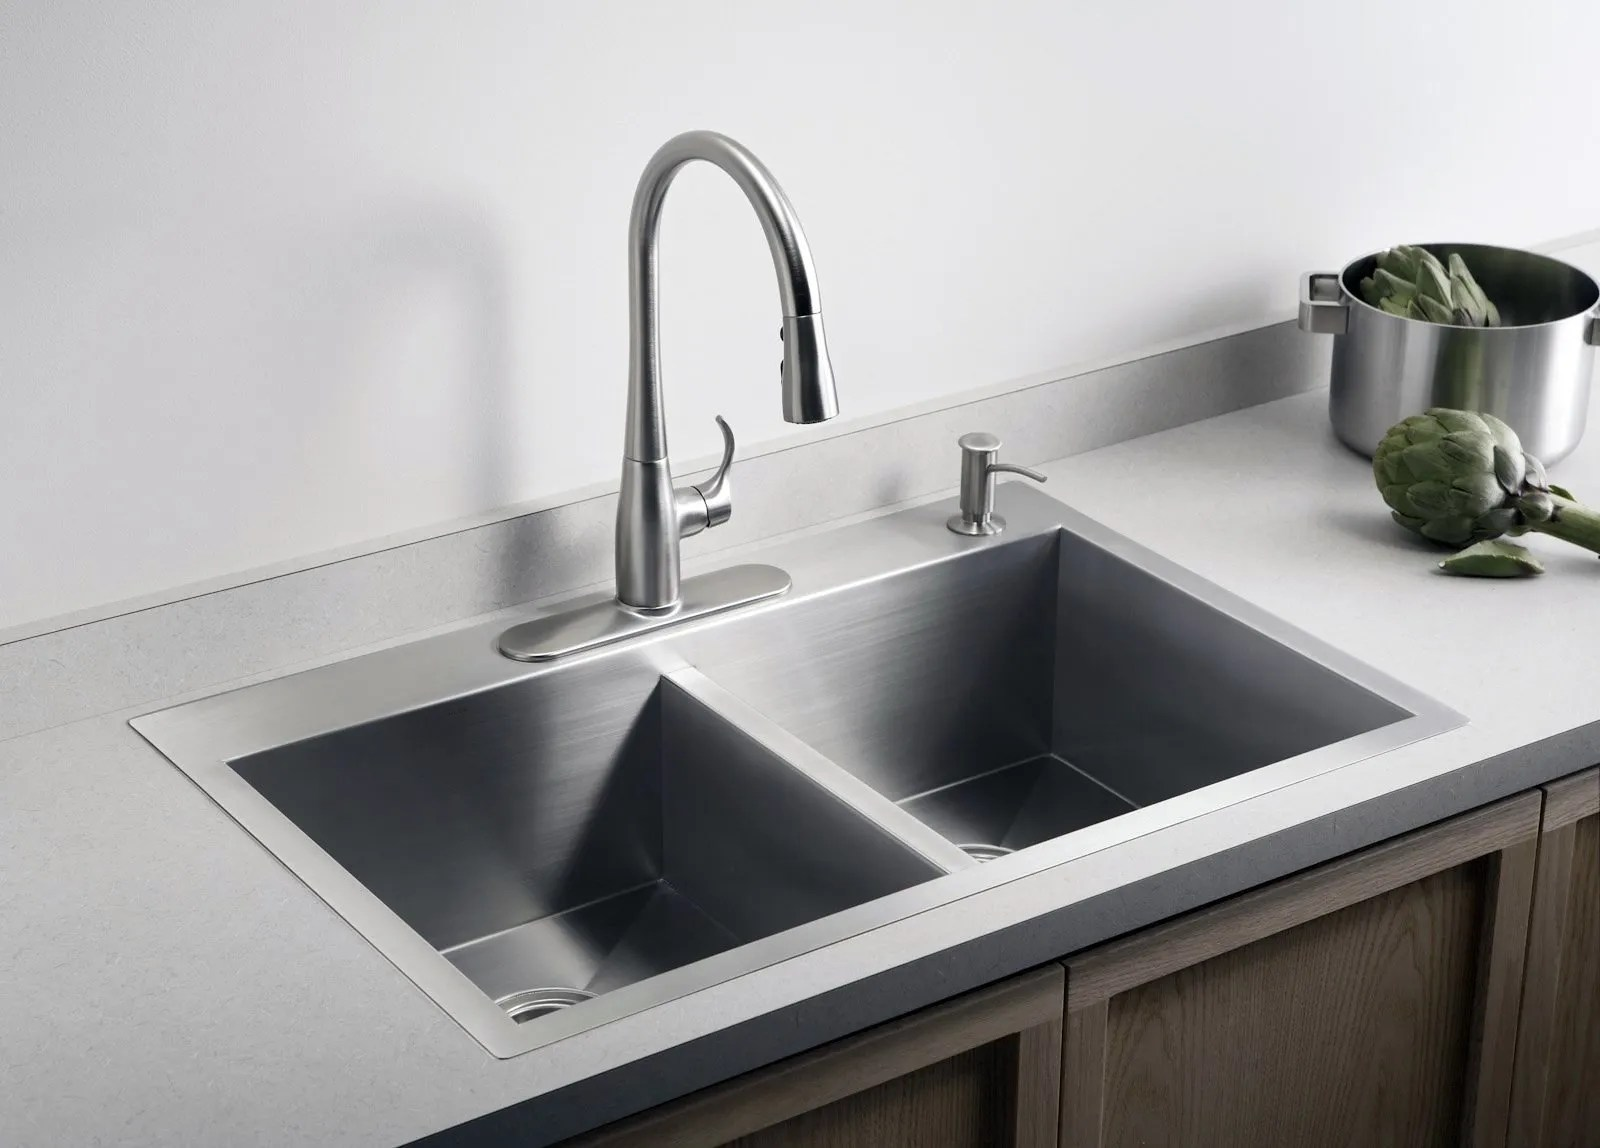 Dual Mount Sink Opens Up Options For Kitchen Counter The